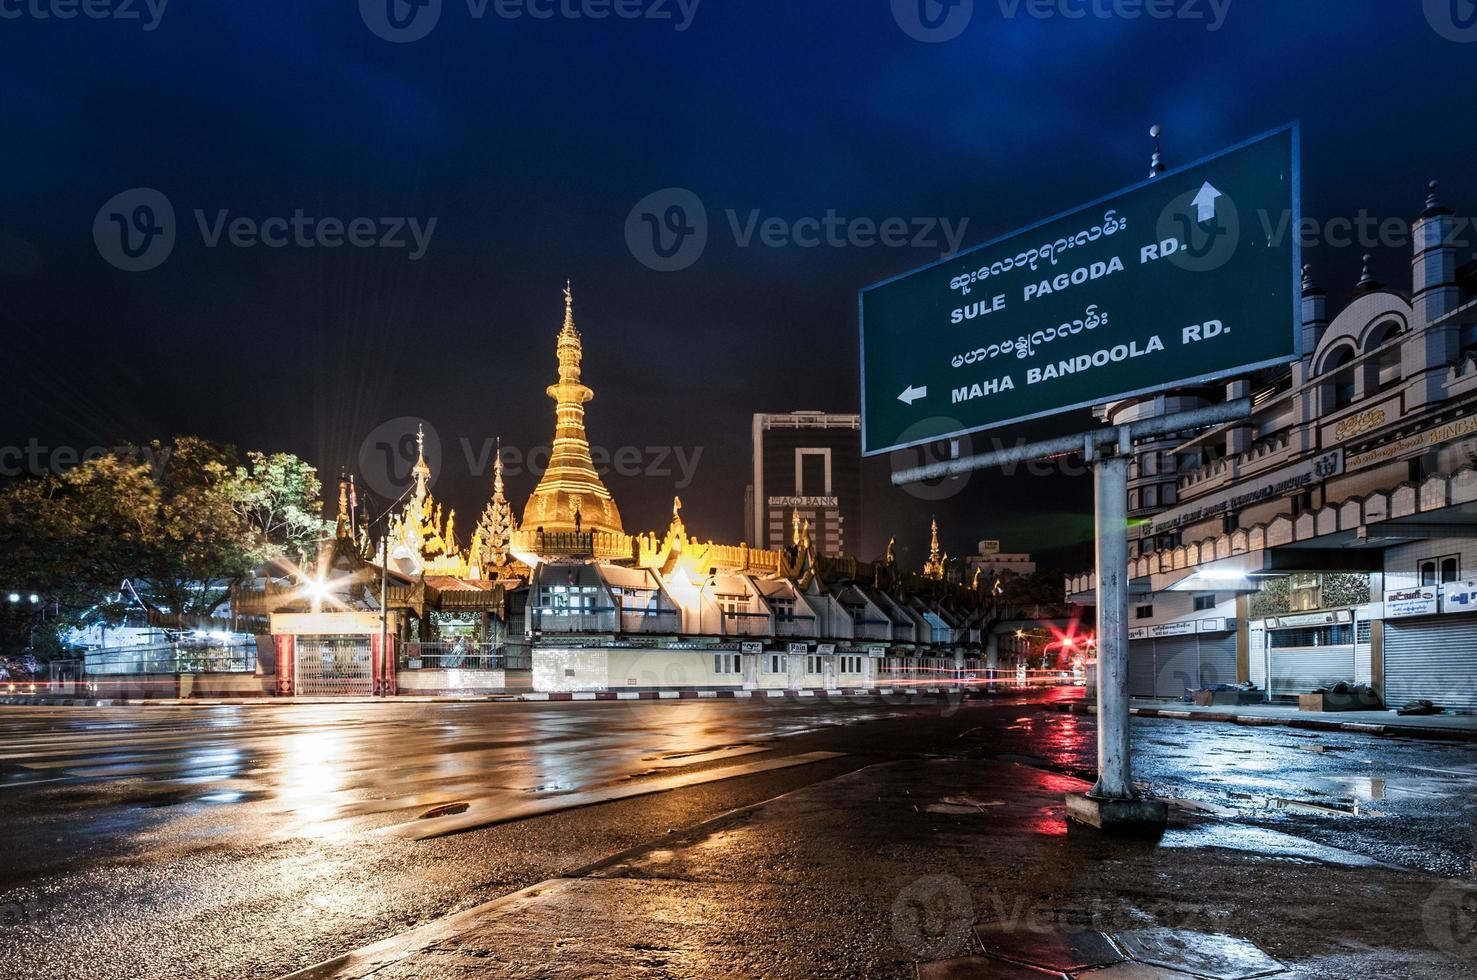 Sule pagoda at night photo